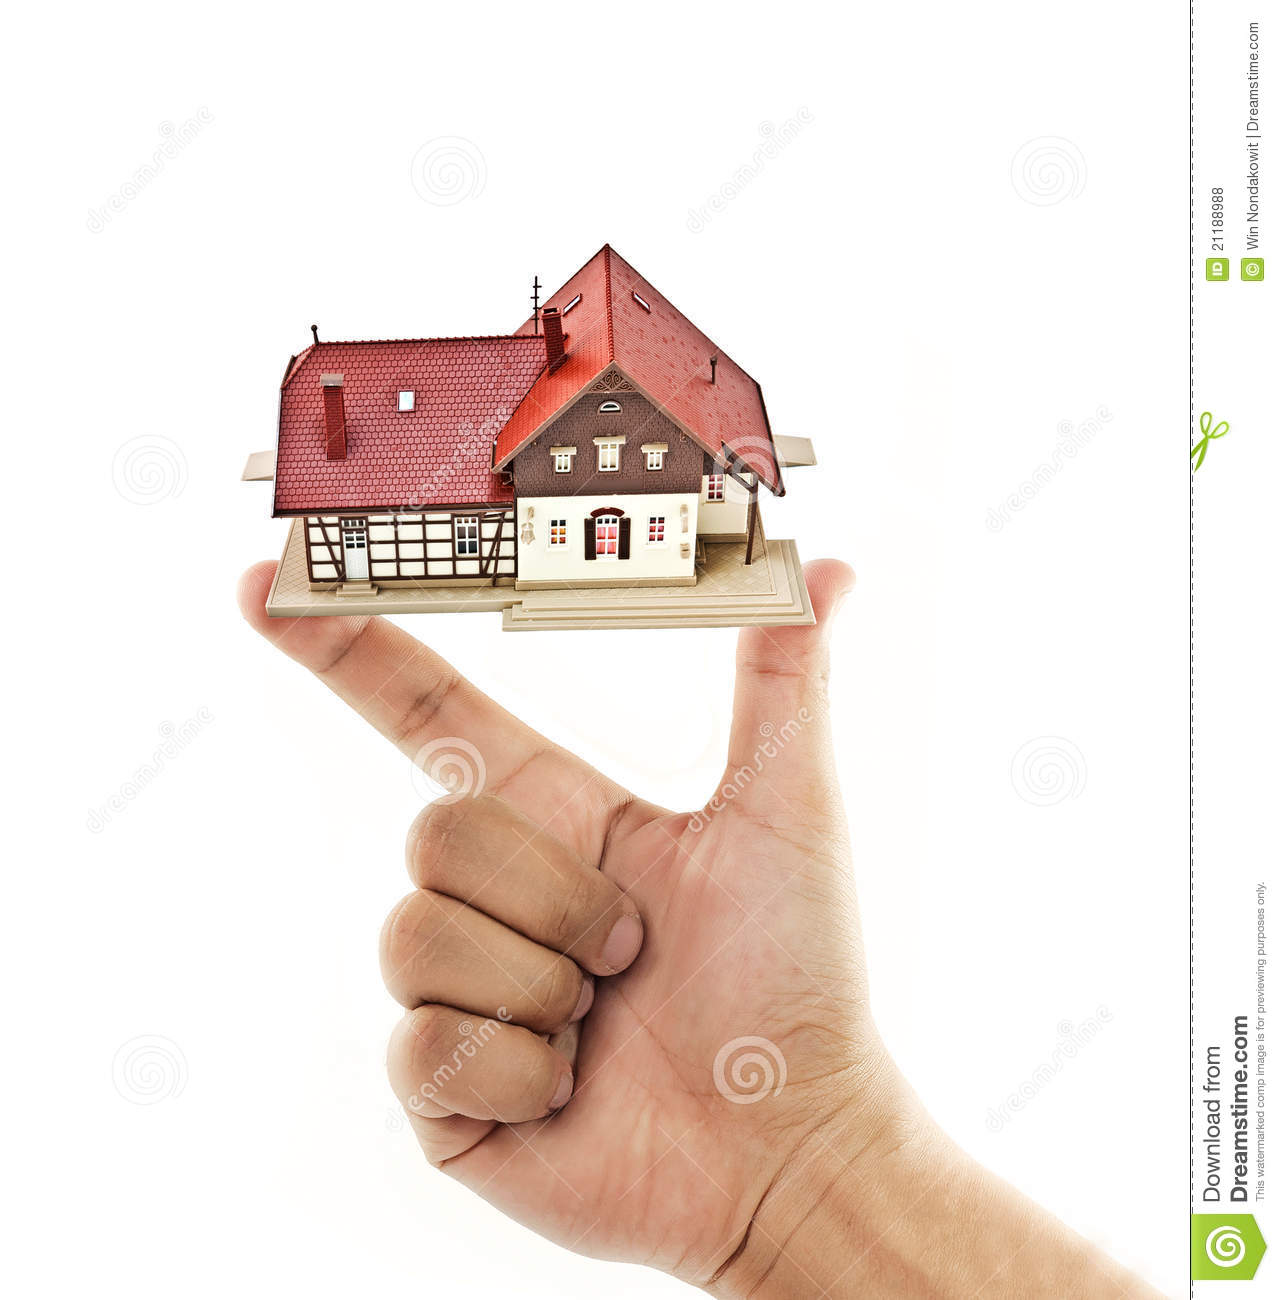 house and hand